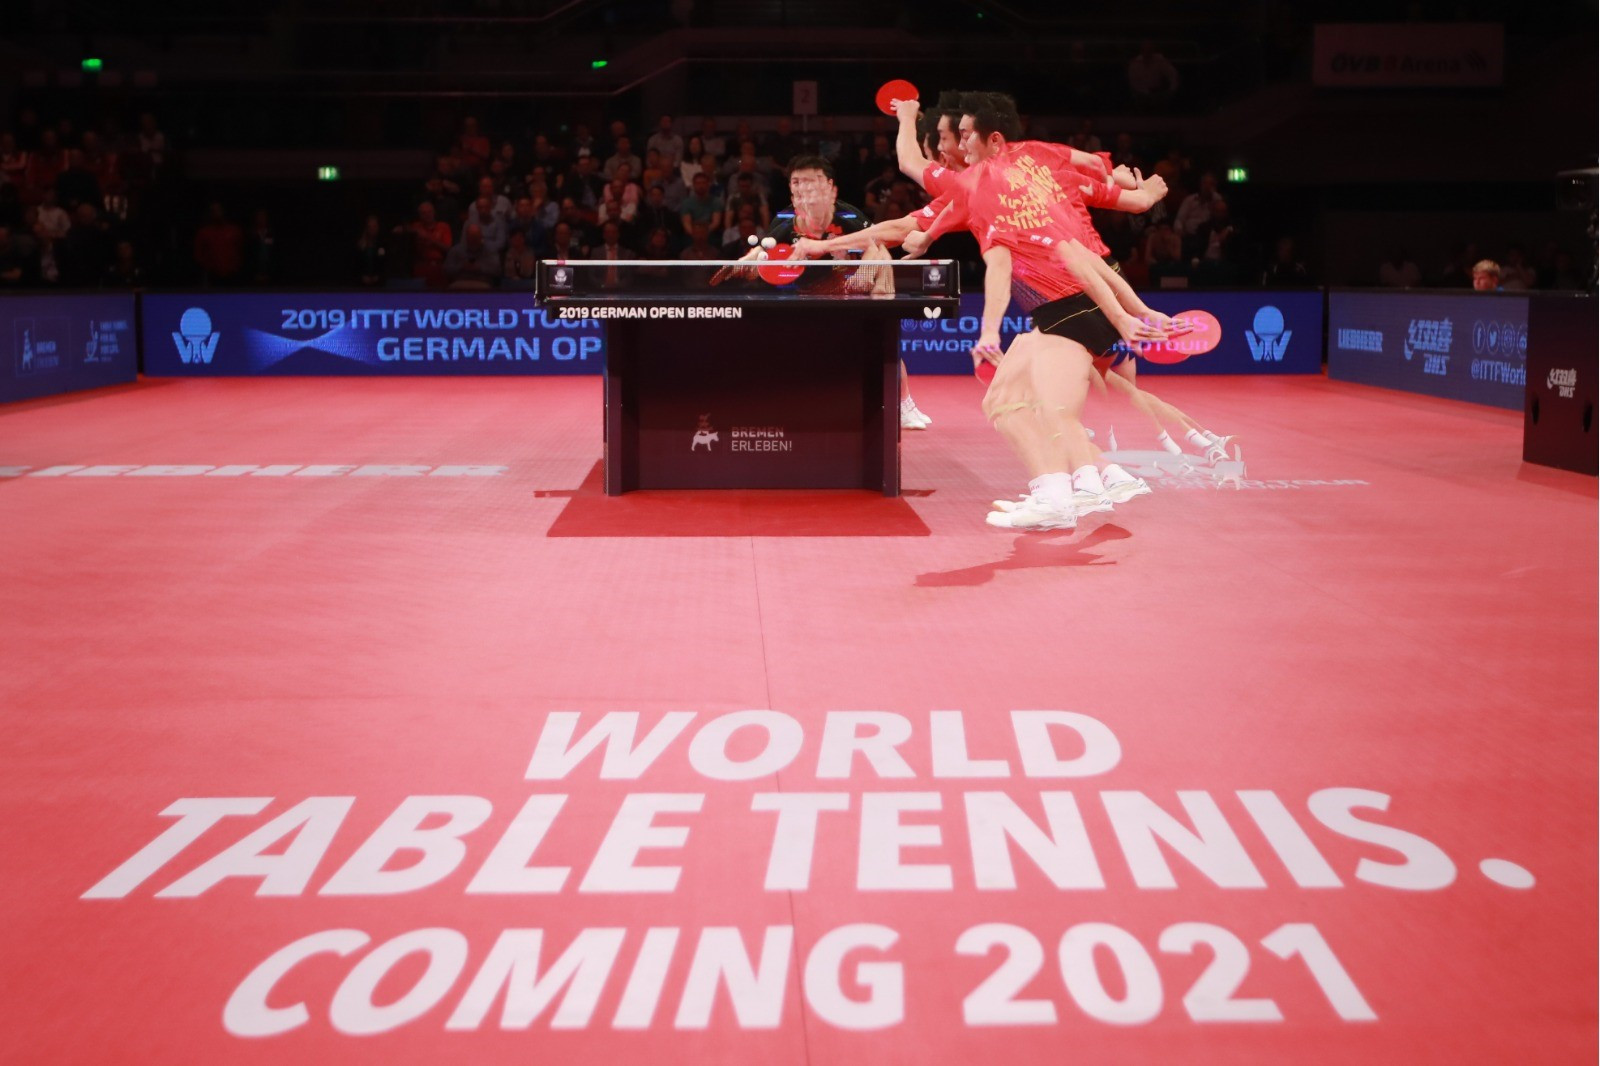 The International Table Tennis Federation approved plans to change its name to World Table Tennis during its Executive Committee meeting in Chengdu ©ITTF